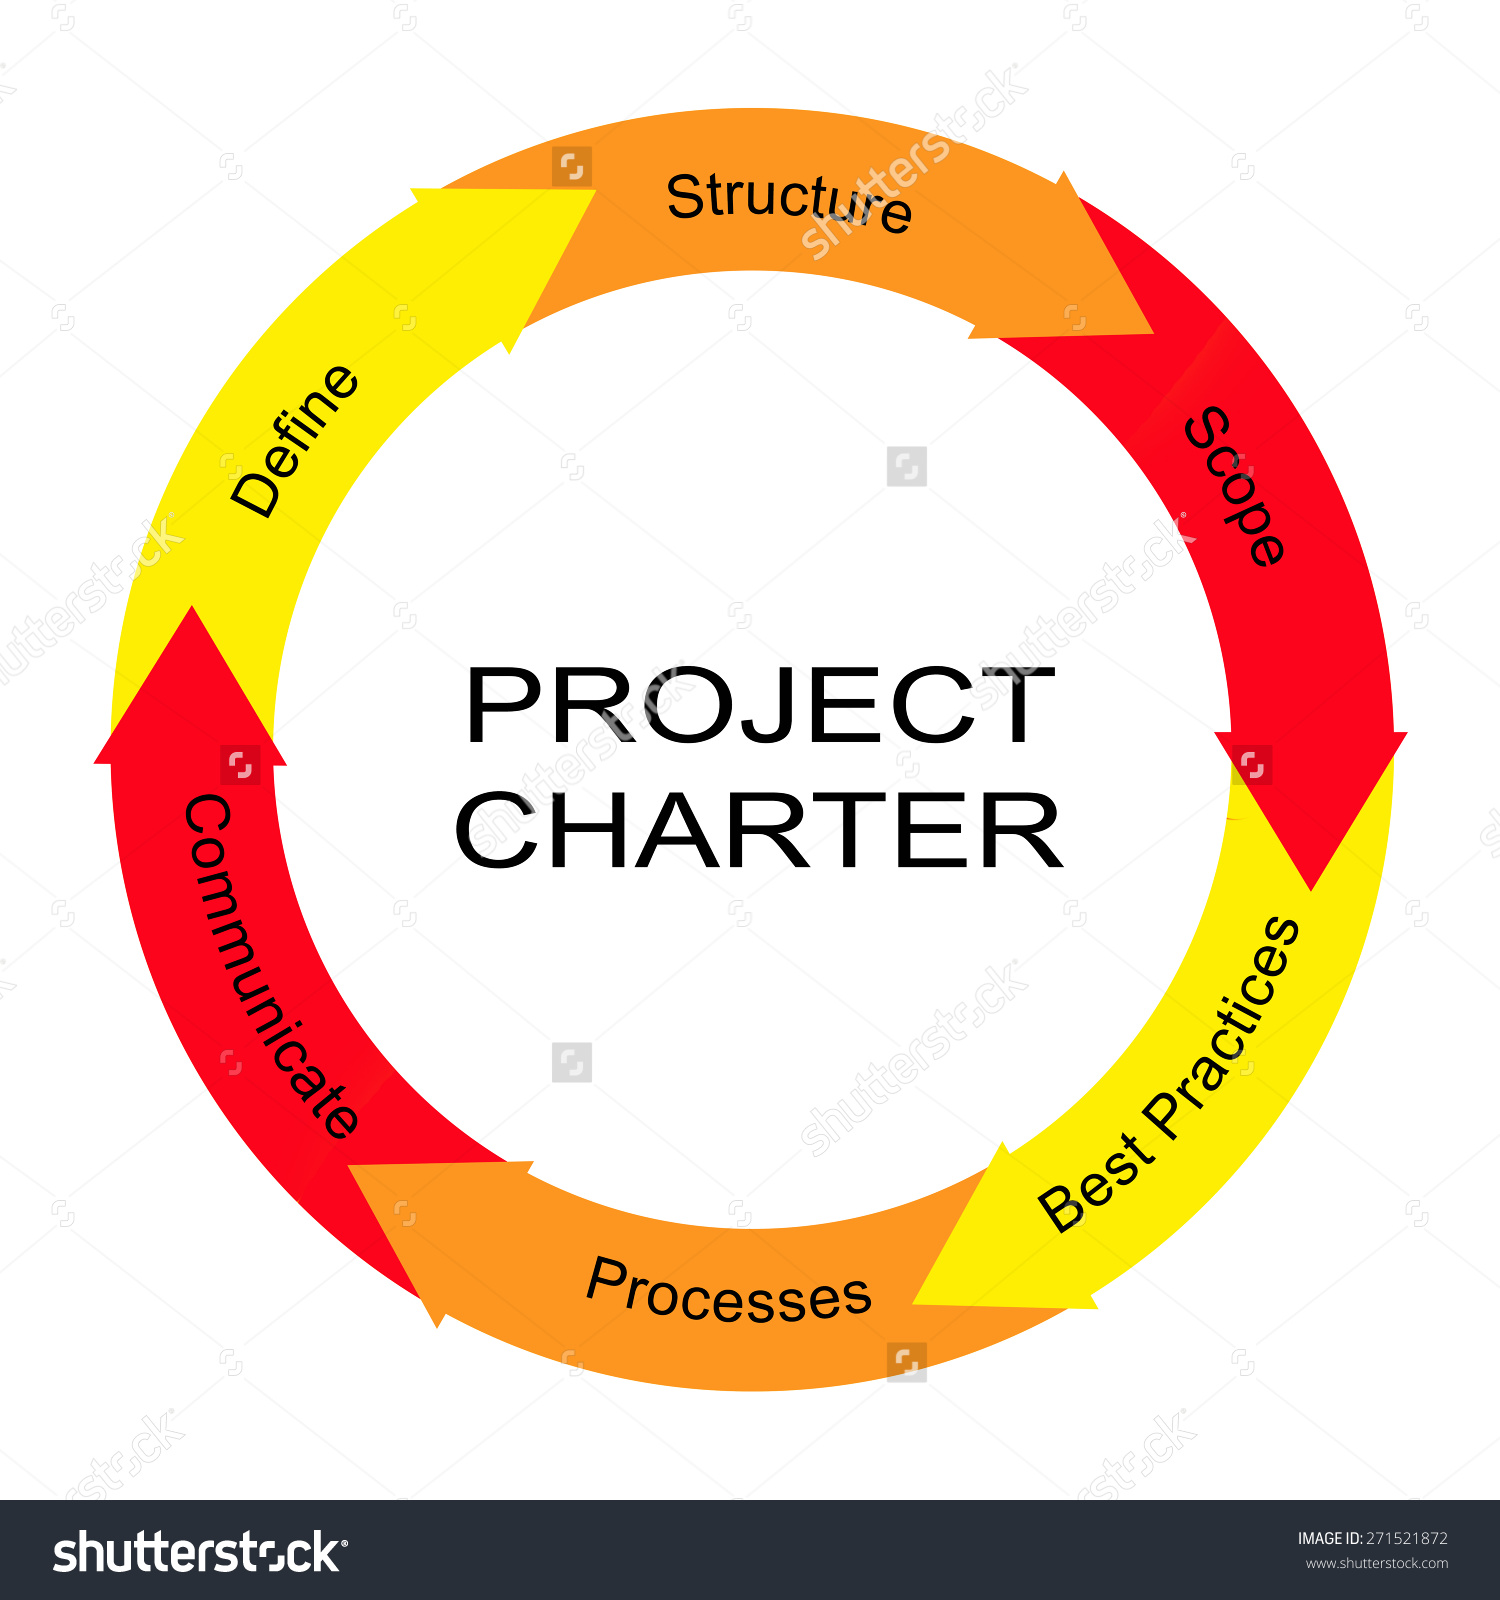 Project charter clipart.